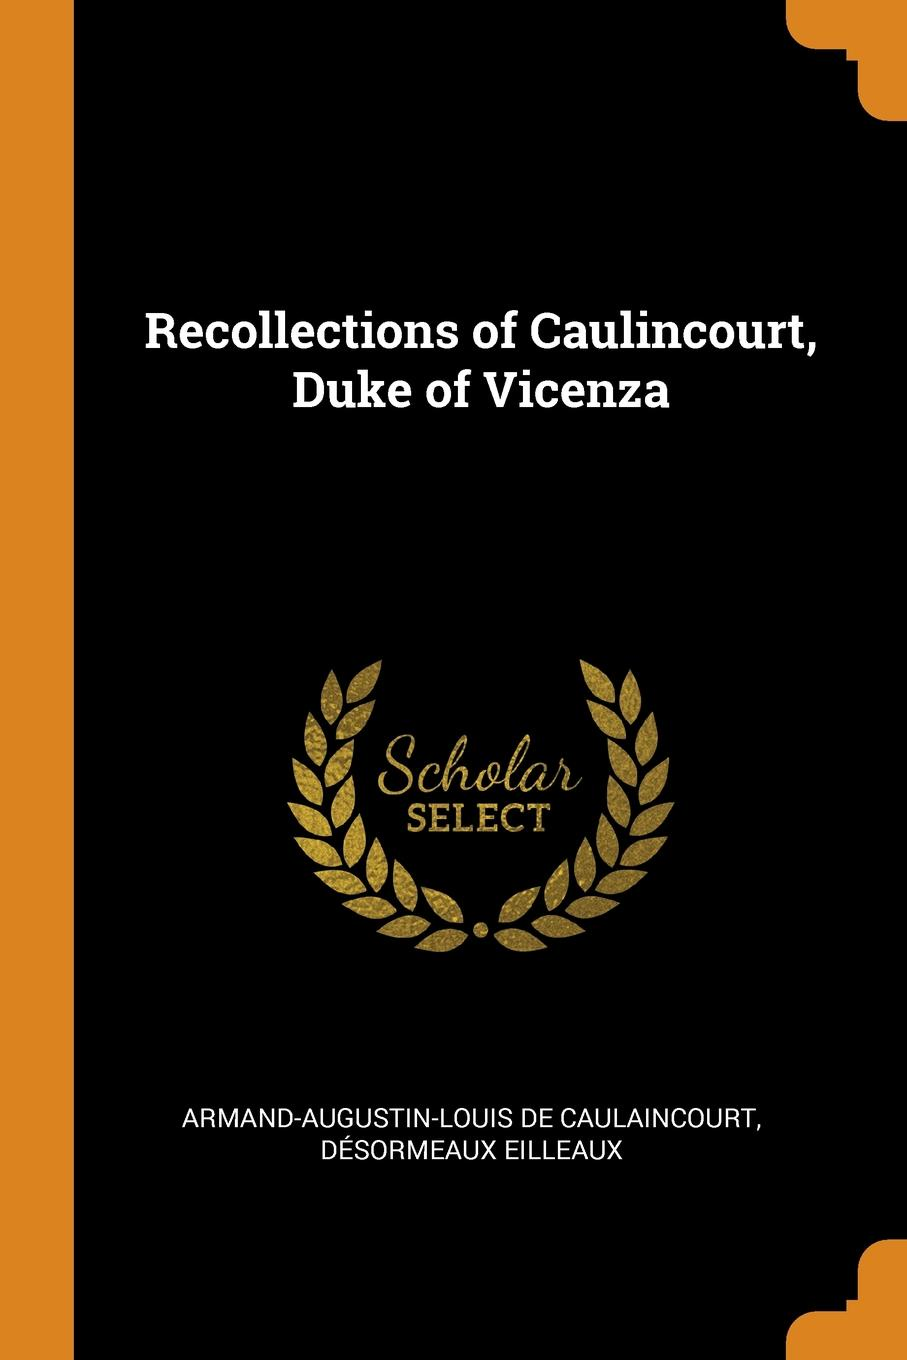 Armand-Augustin-Louis De Caulaincourt, Désormeaux Eilleaux Recollections of Caulincourt, Duke of Vicenza